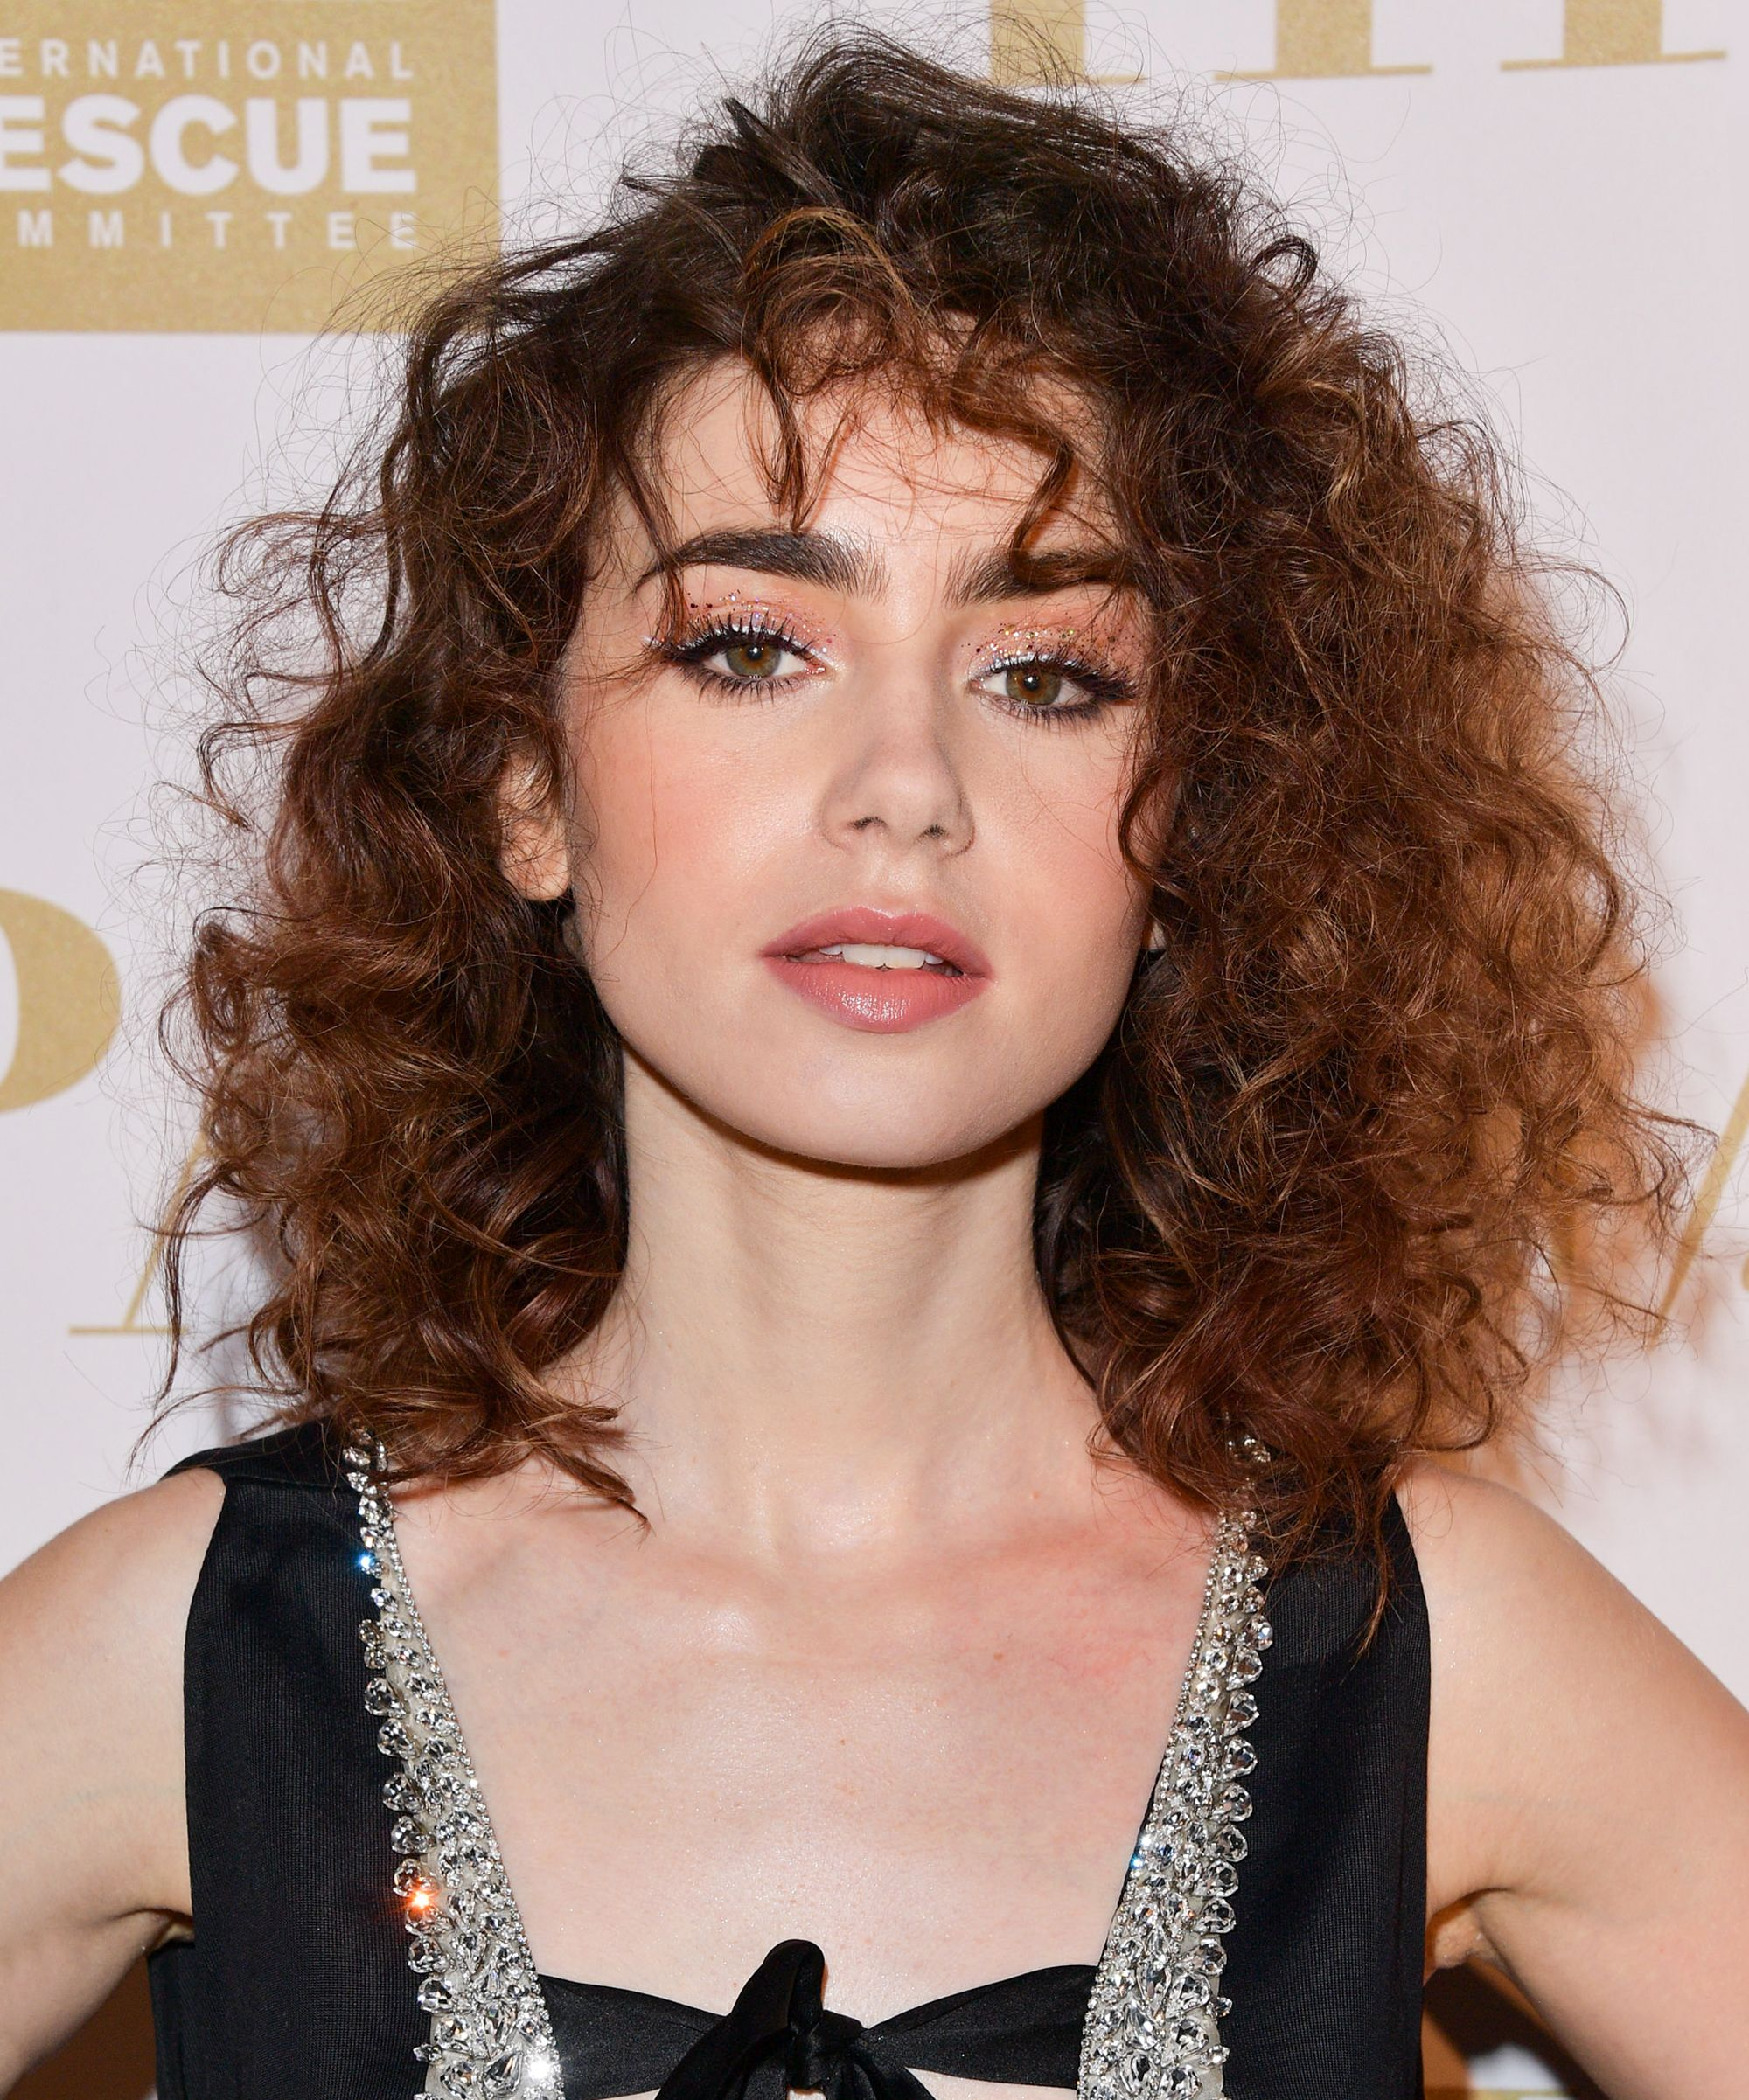 Daily Beauty Buzz Lily Collins Brings Back the 80s Perm